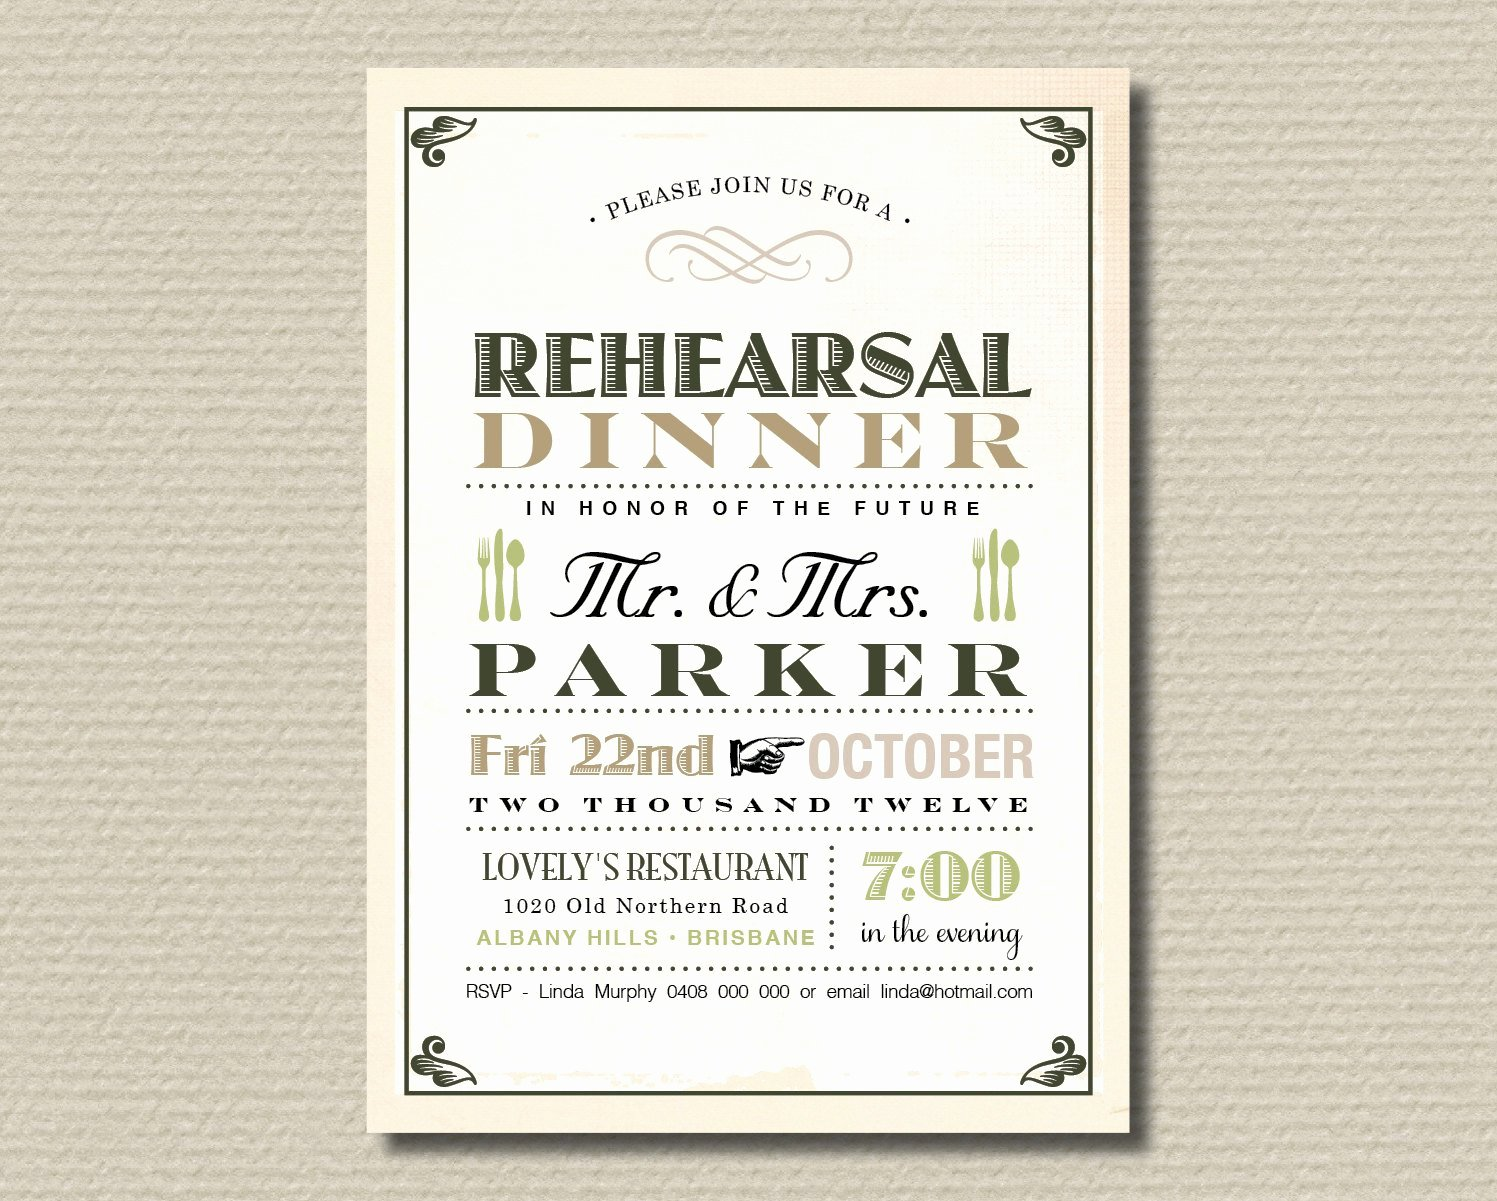 Rehearsal Dinner Invitation Template Unique Rehearsal Dinner Invitation Template Free